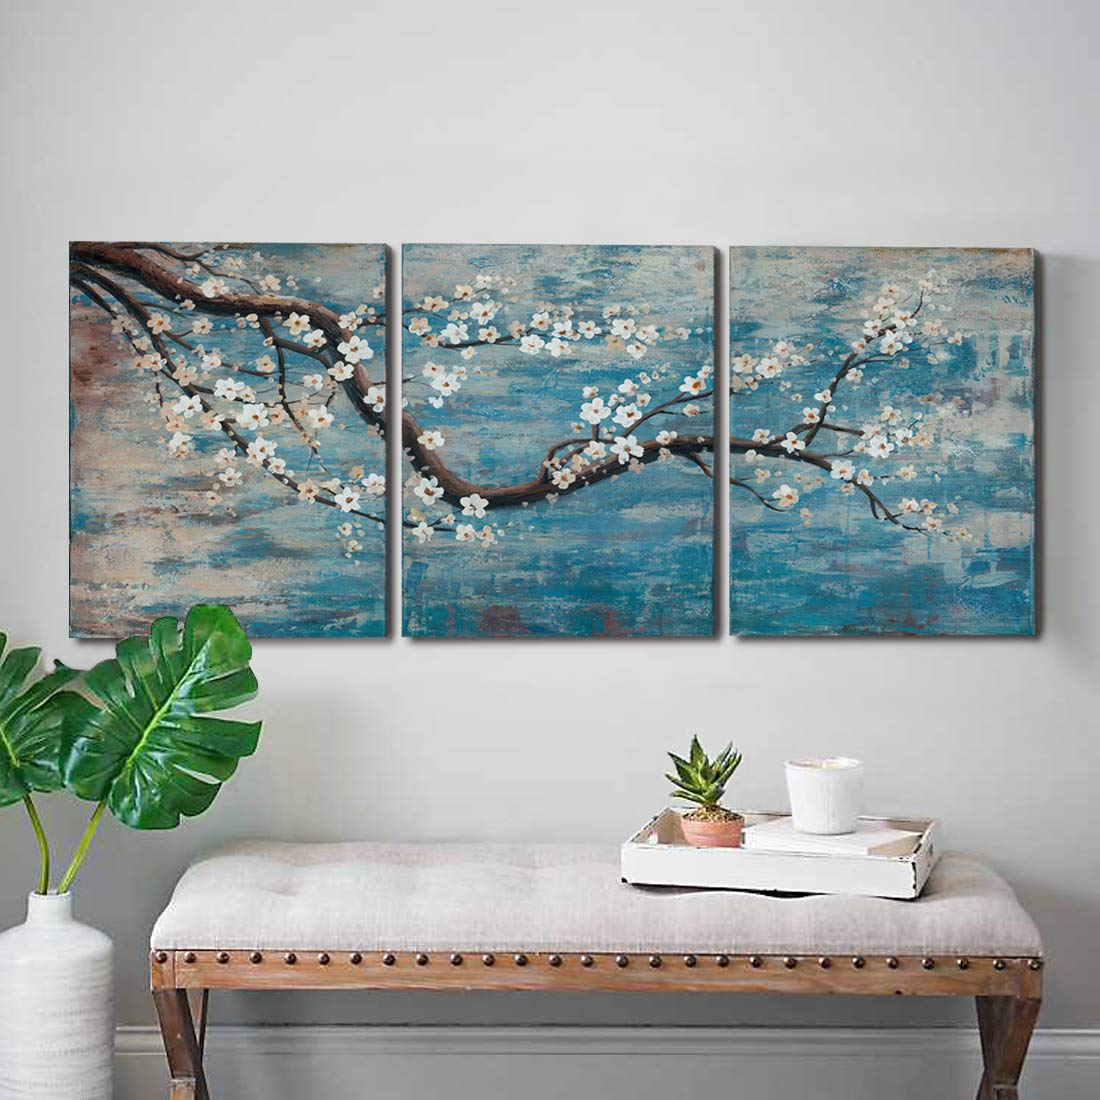 """amatop 3 Piece Wall Art Hand-Painted Framed Flower Oil Painting On Canvas Gallery Wrapped Modern Floral Artwork for Living Room Bedroom Décor Teal Blue Lake Ready to Hang 12""""x16""""x3 Panel"""